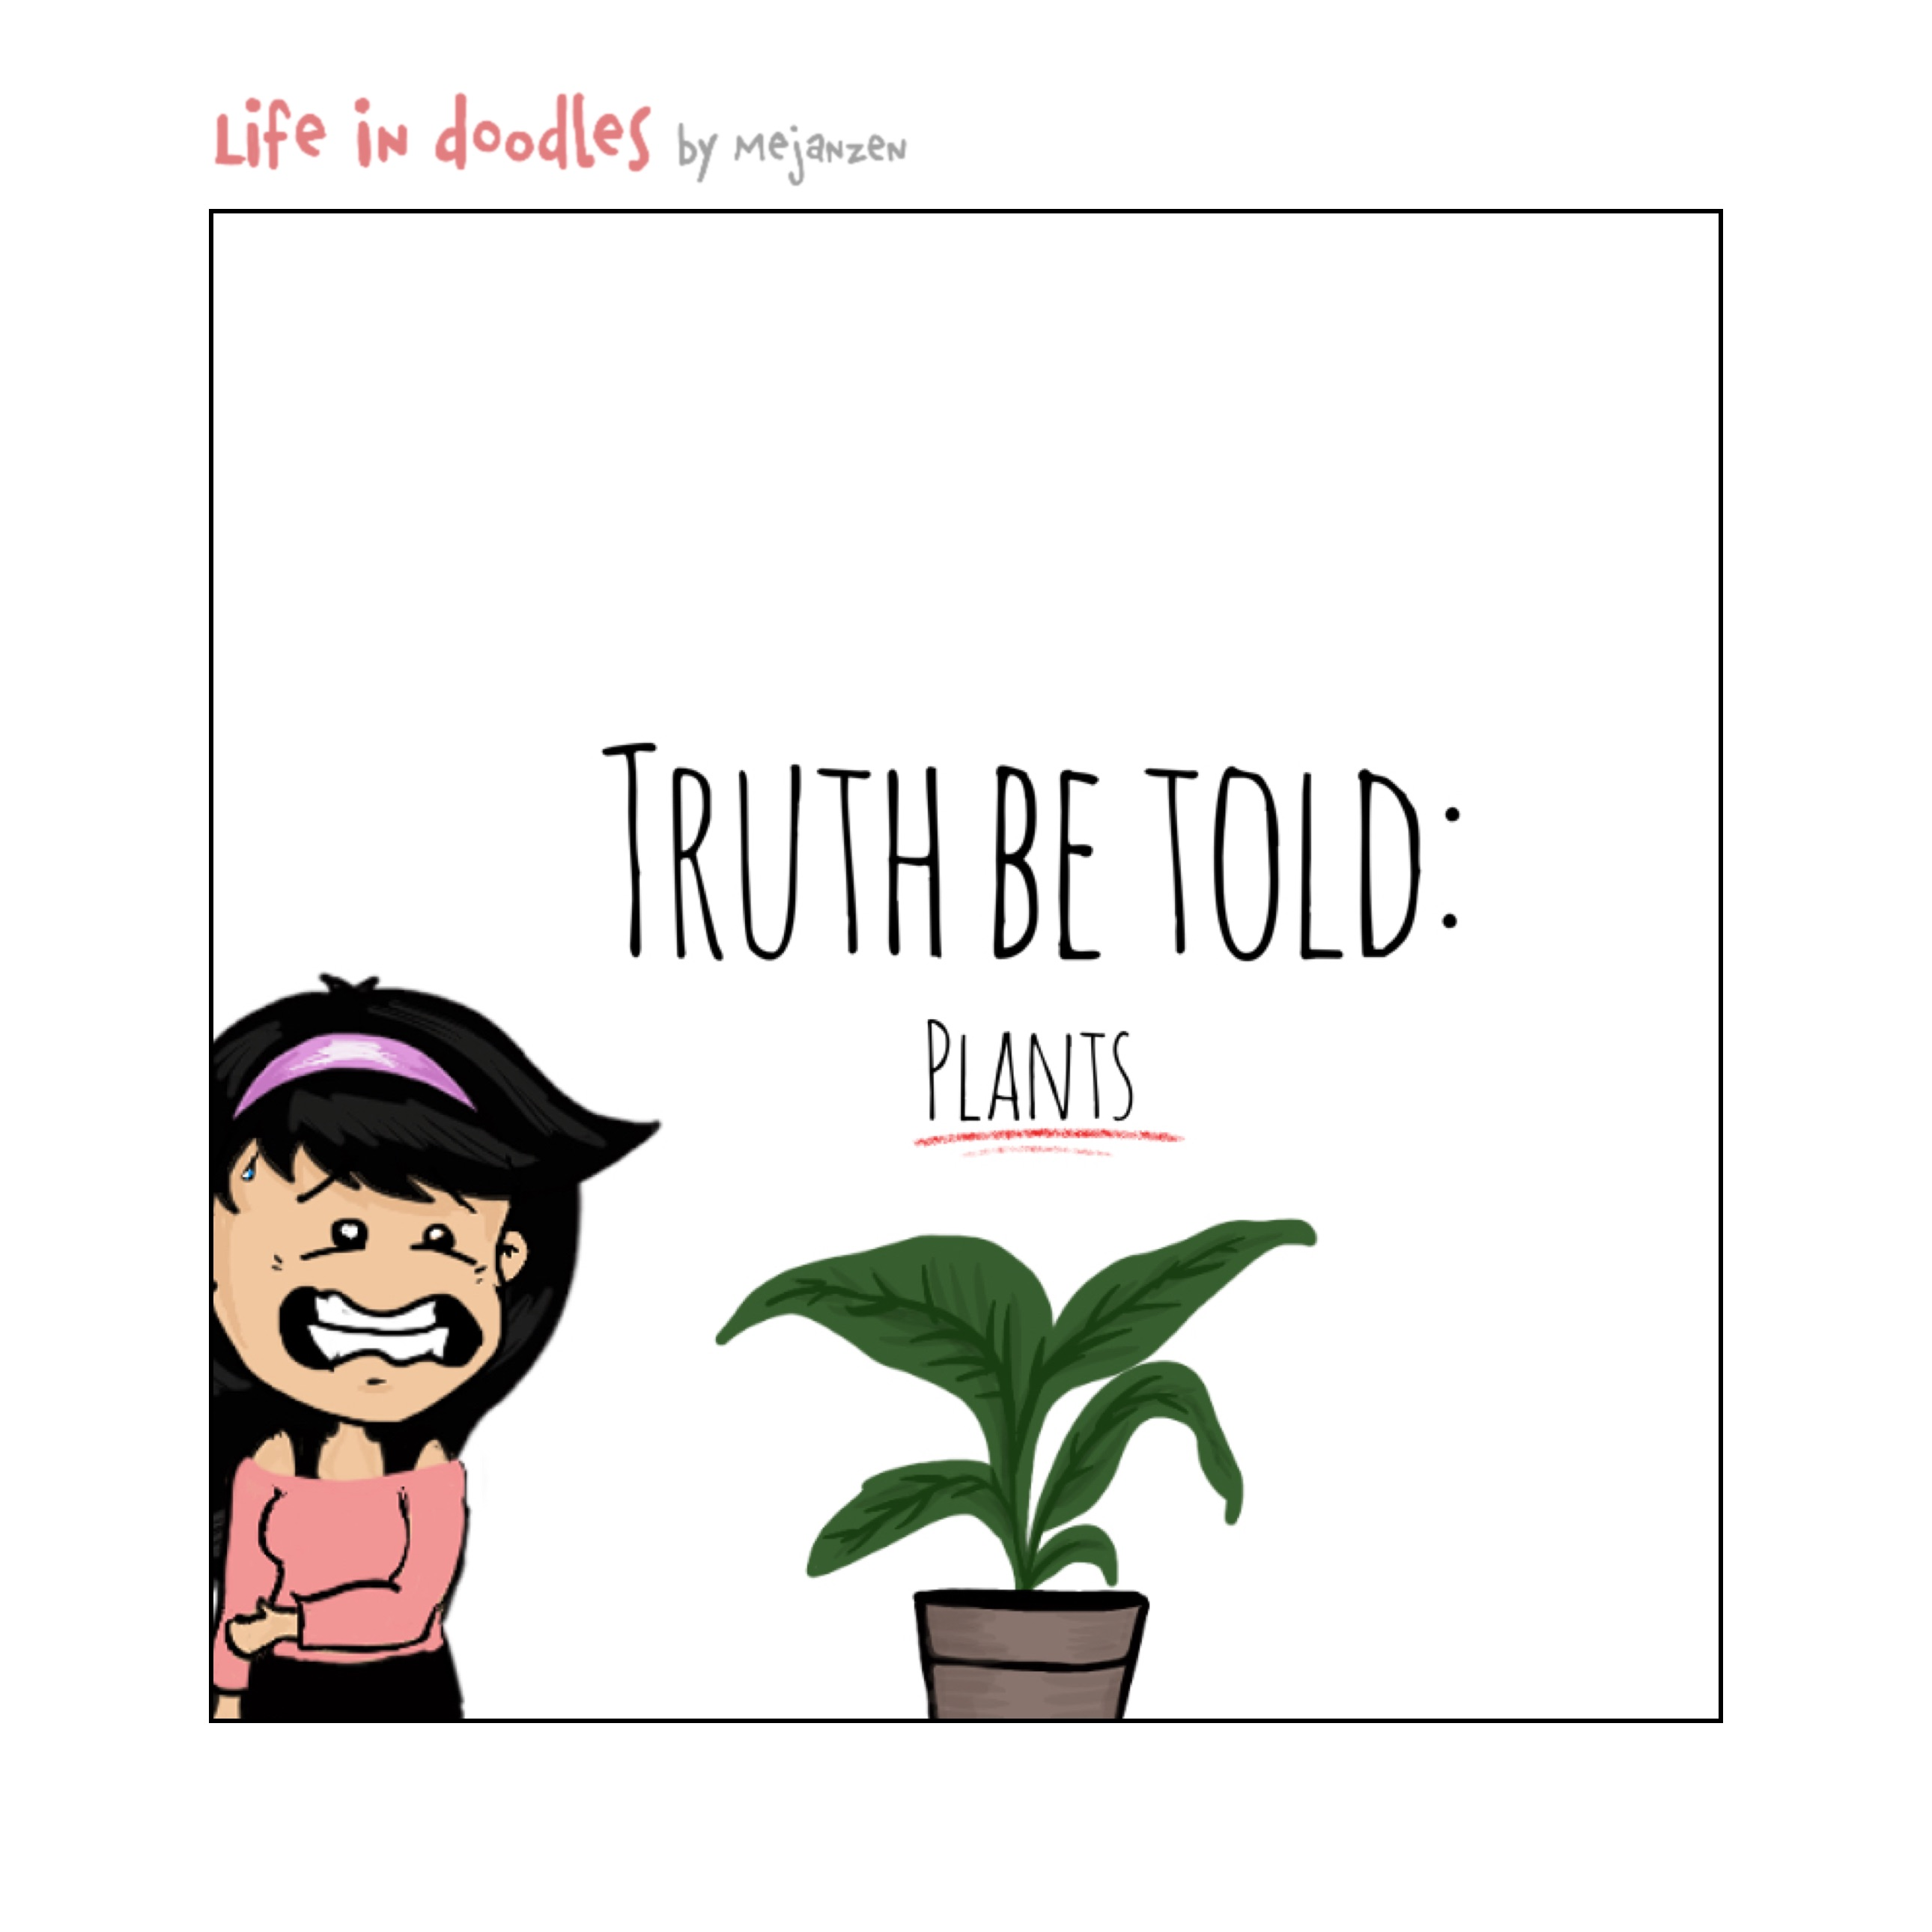 Truth be told: Plants